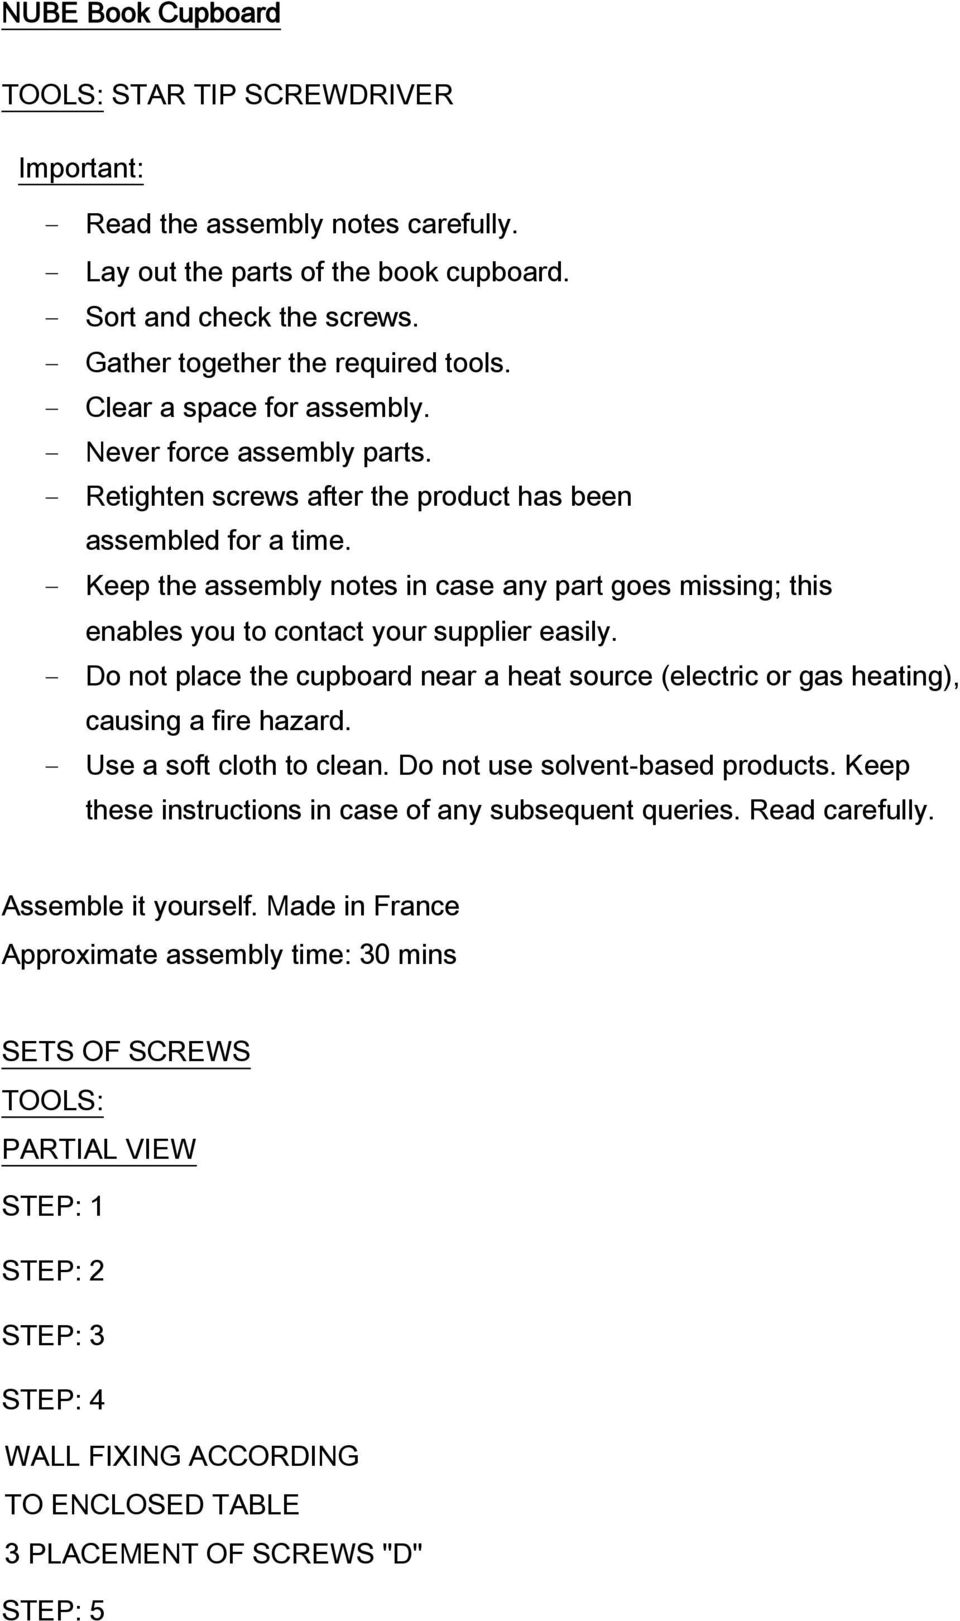 - Keep the assembly notes in case any part goes missing; this enables you to contact your supplier easily.